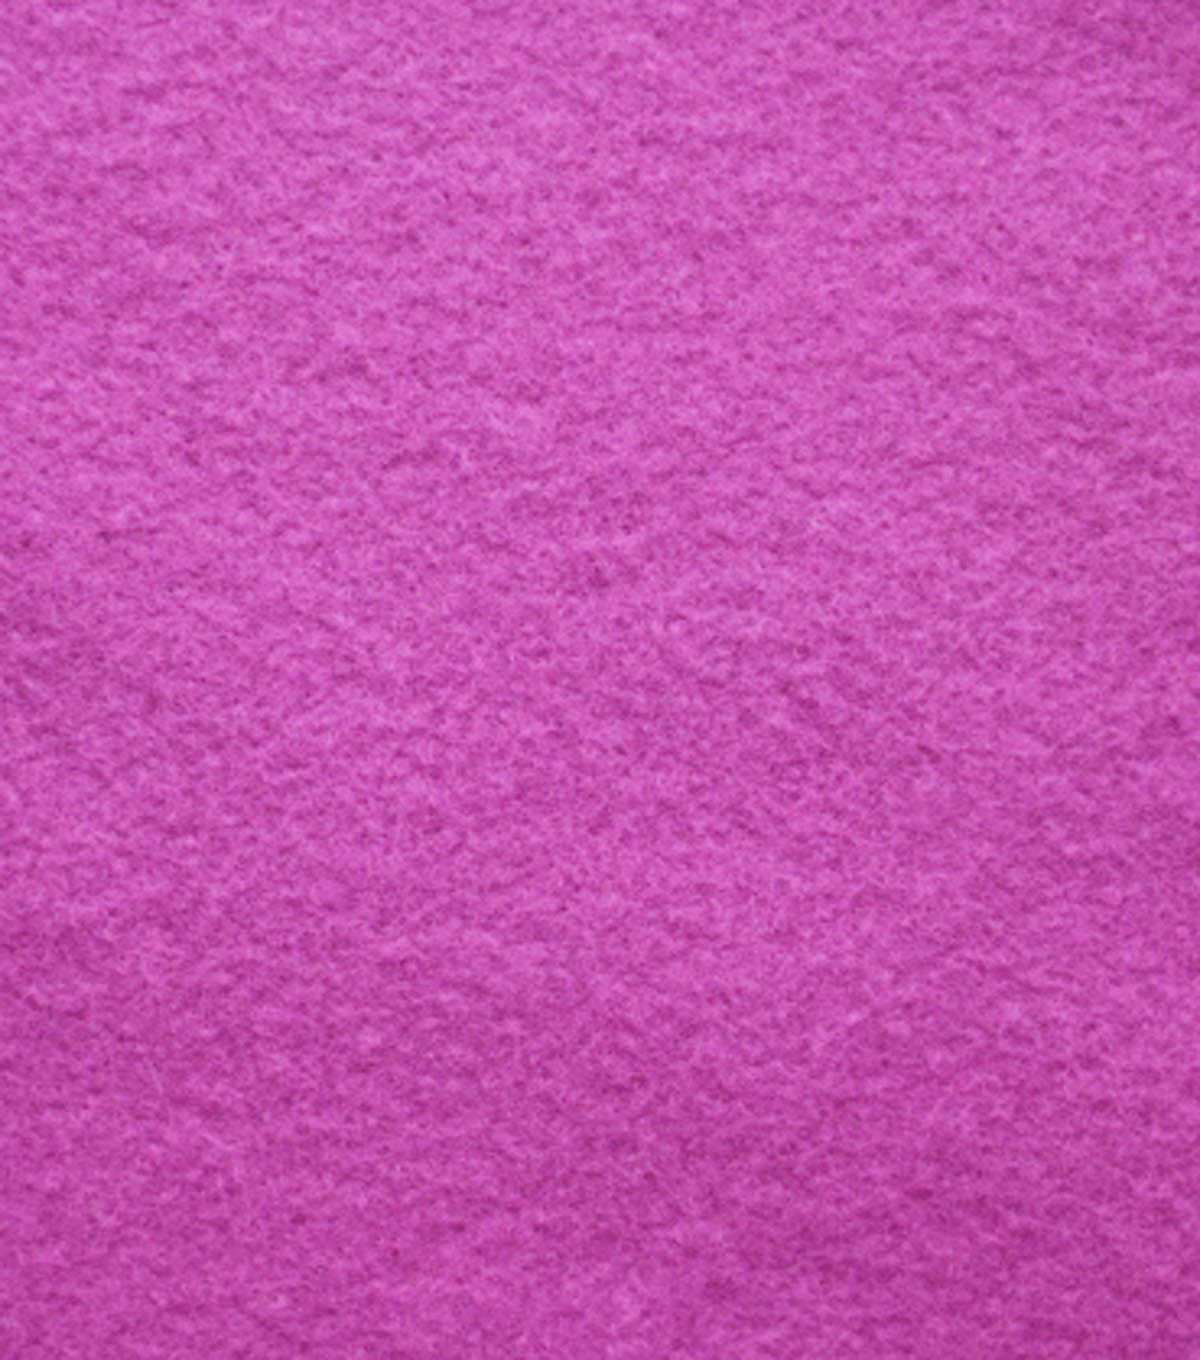 Blizzard Fleece Fabric -Solids, Hollyhock